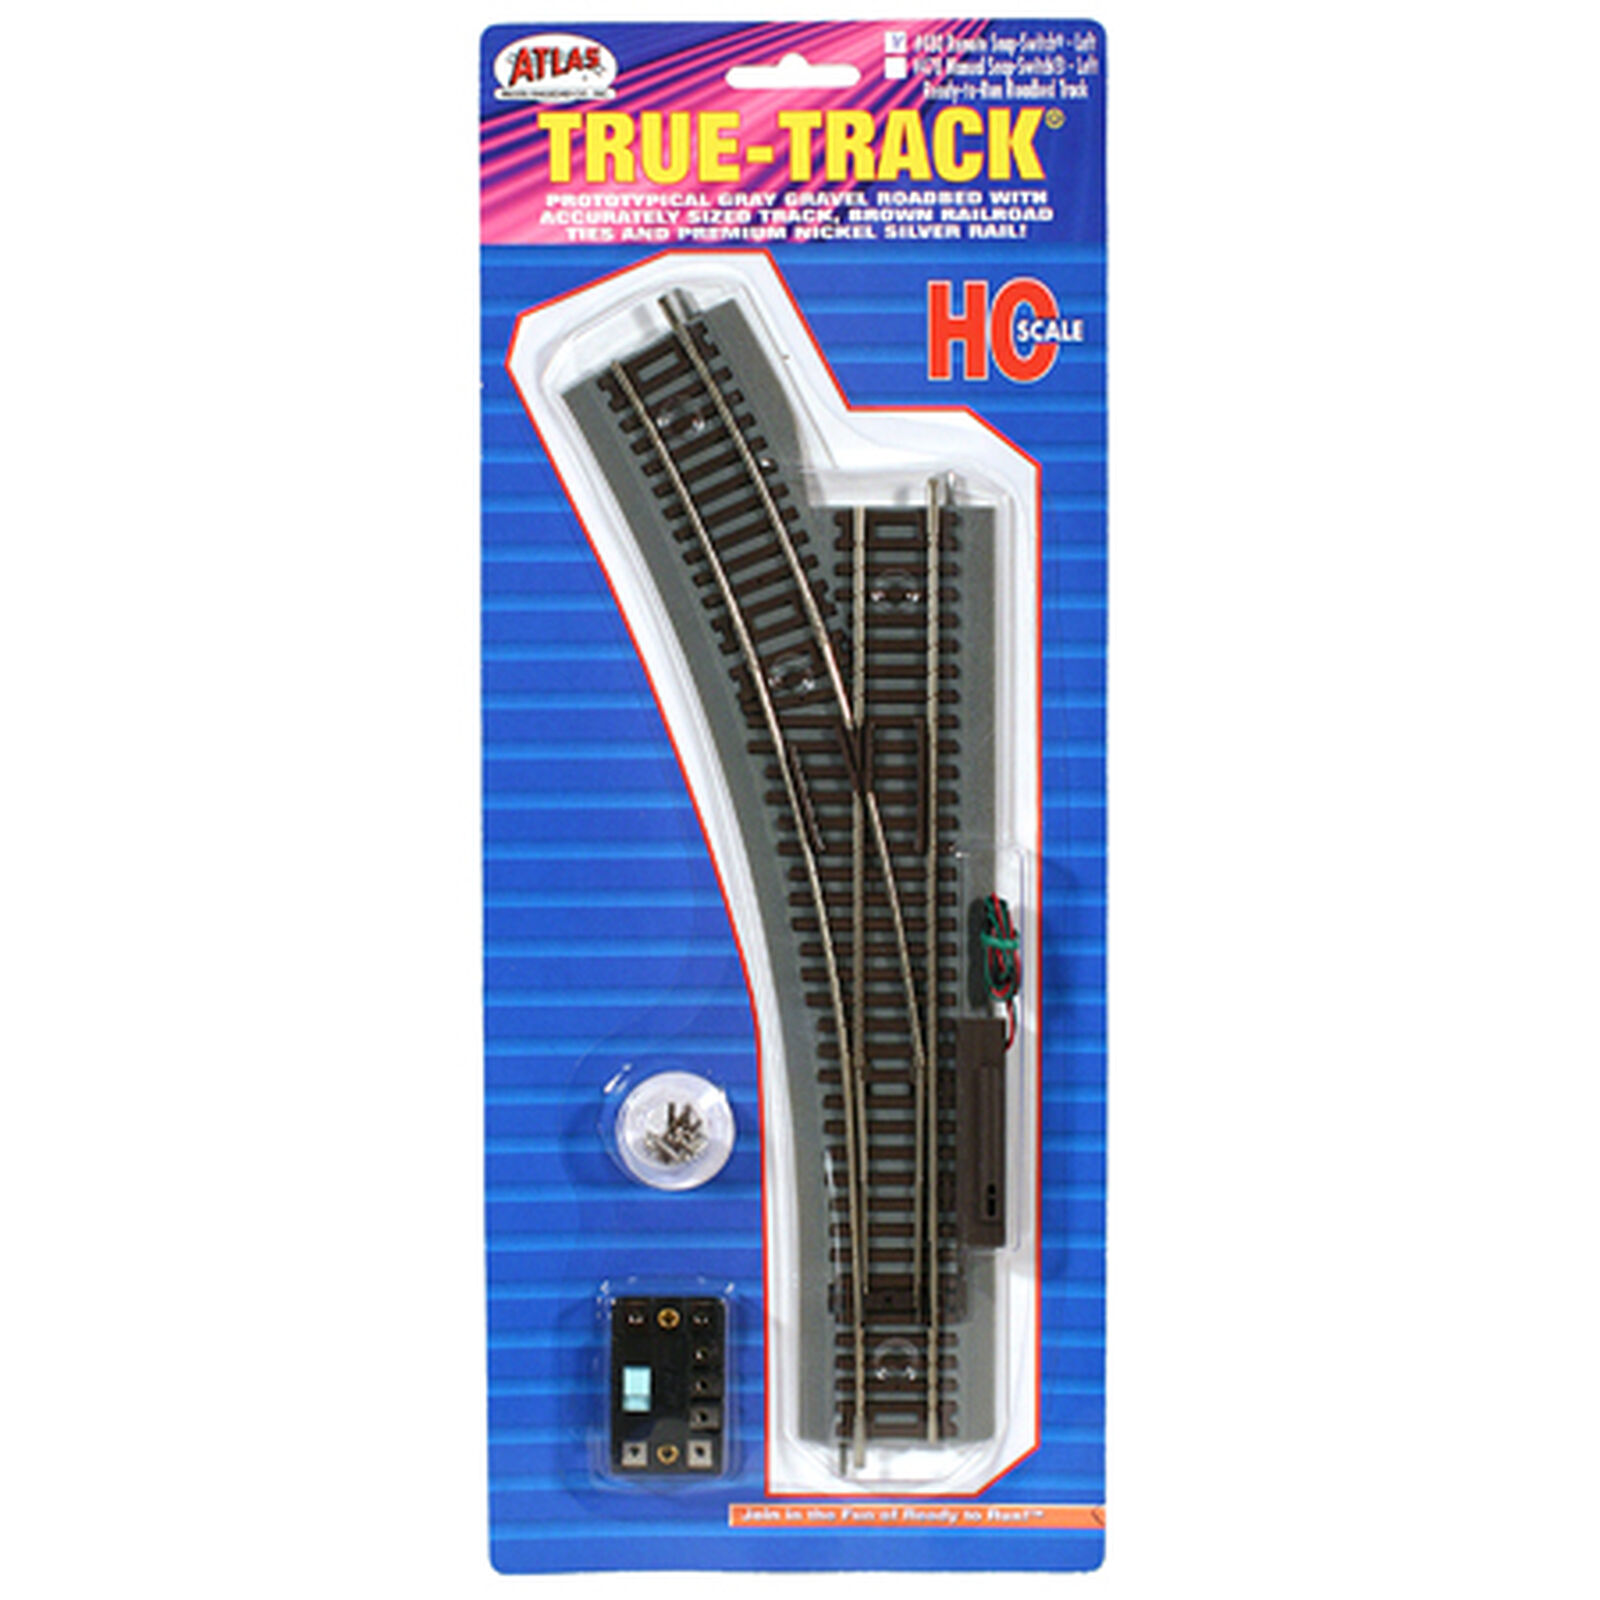 HO True-Track Remote Left-Hand Switch